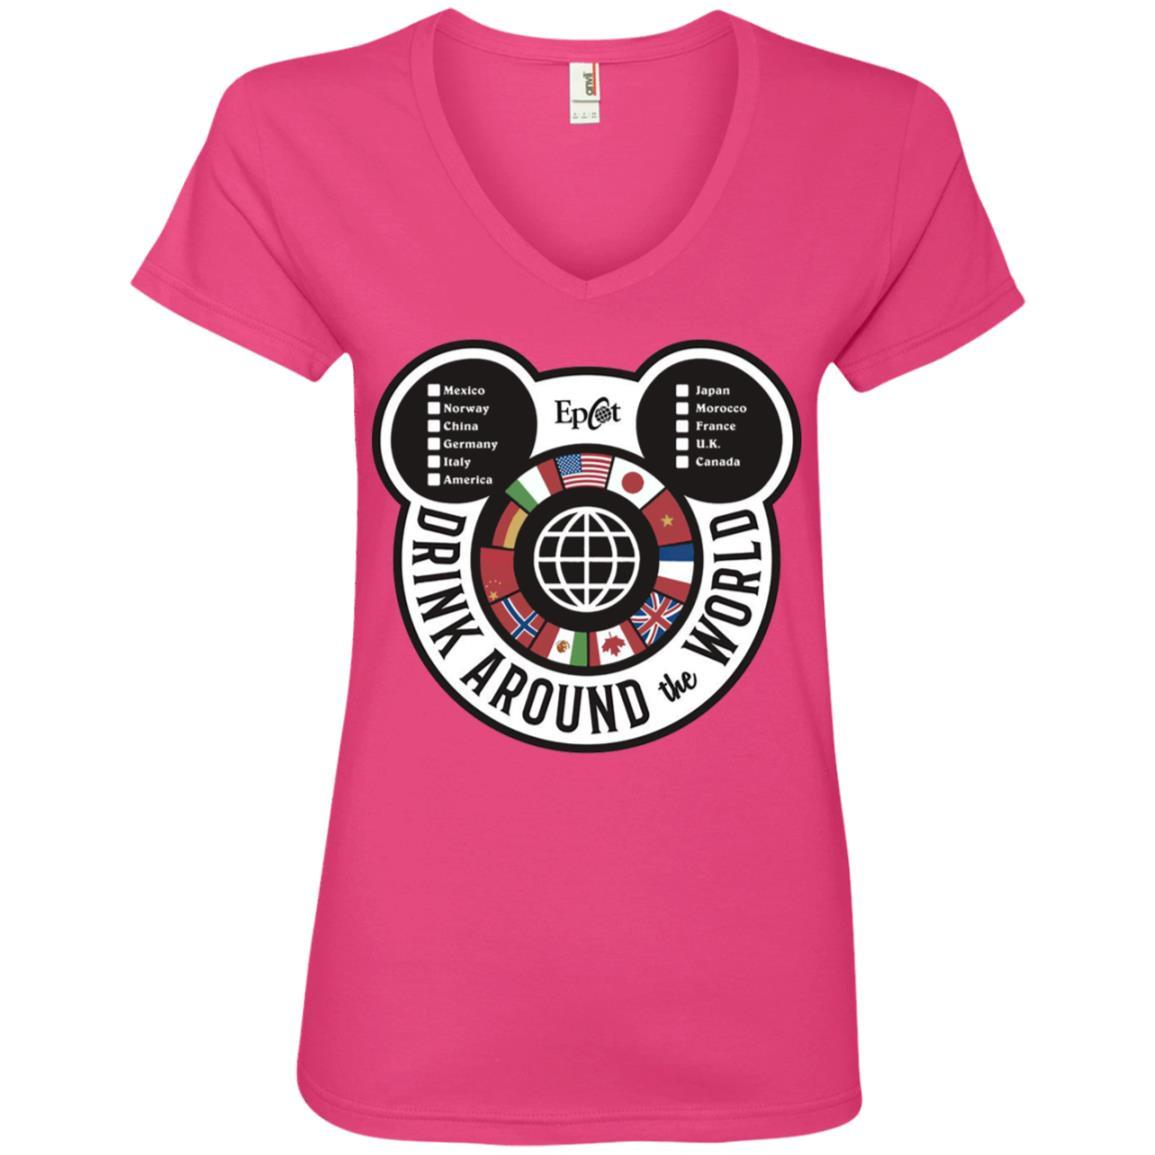 Drink Around the World - EPCOT Checklist - Ladies' V-Neck T-Shirt Hot Pink / 2XL